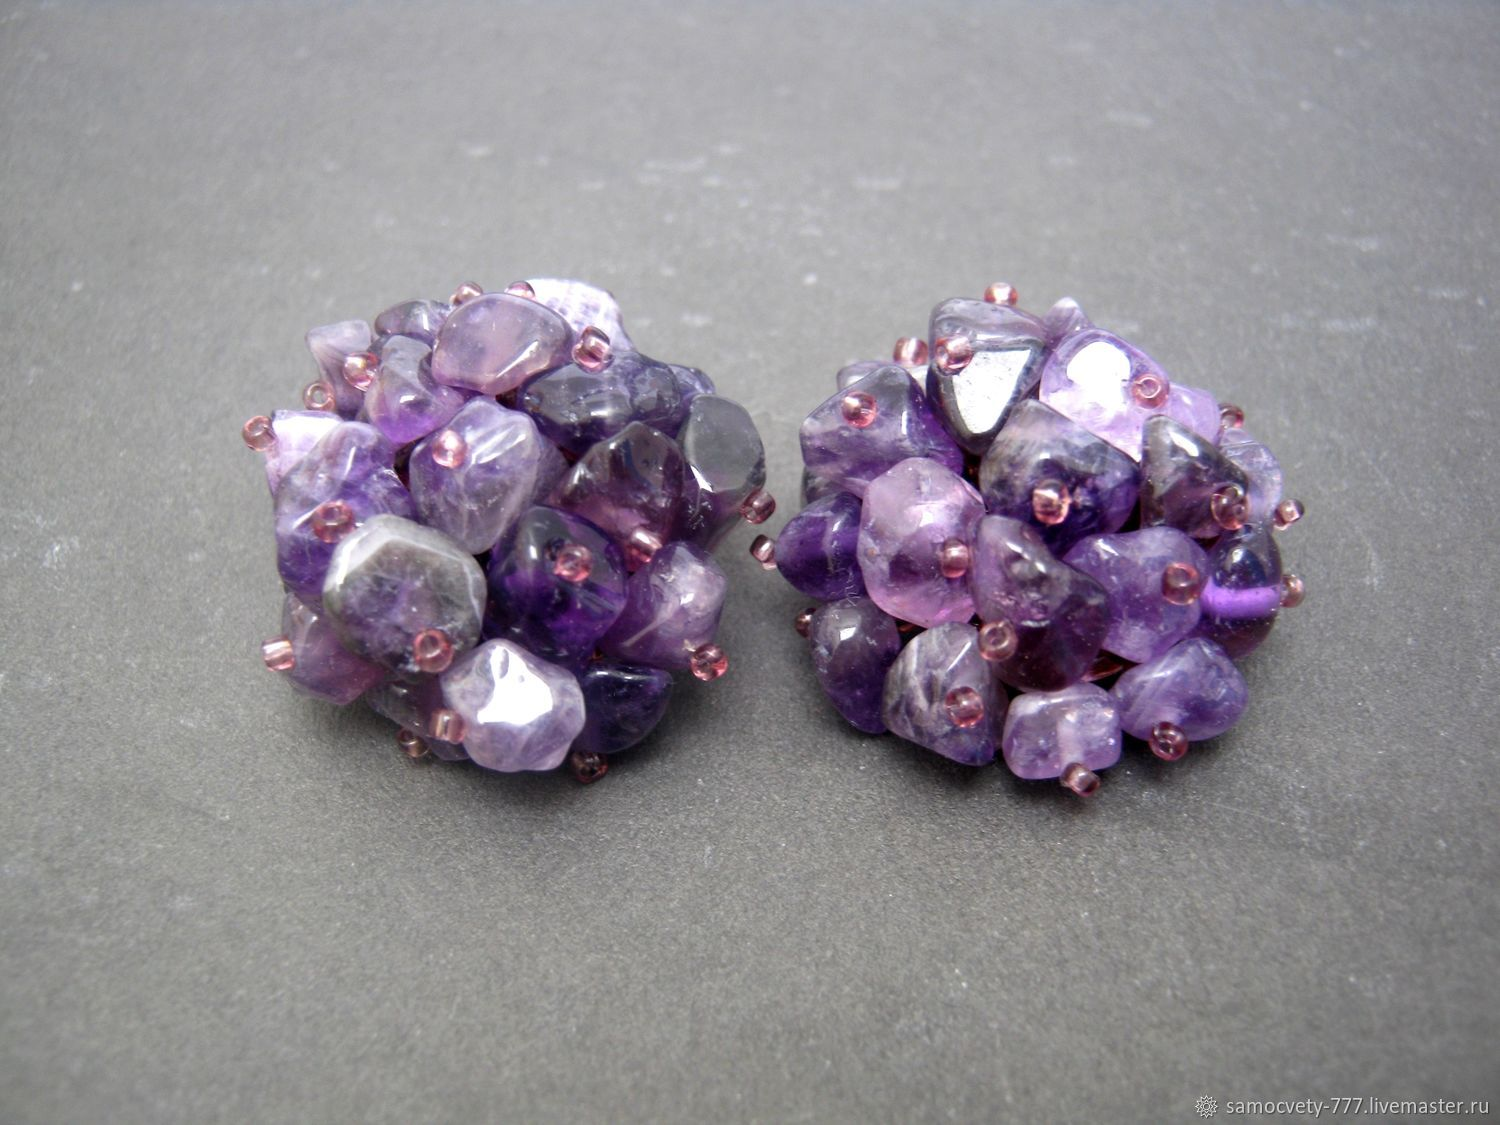 A Nice Clip With Natural Stone Amethyst Samocvety Online Earrings Handmade